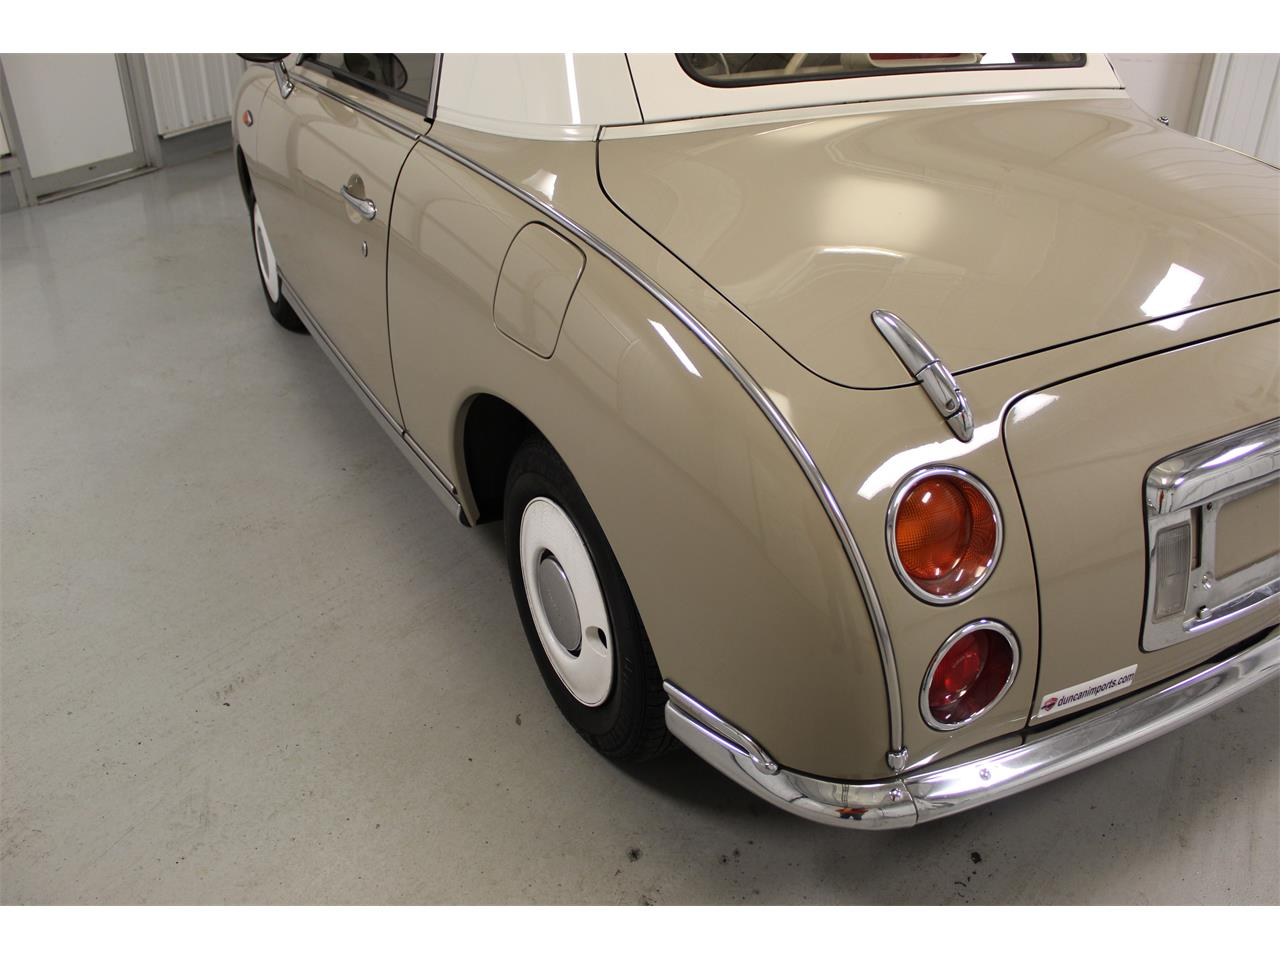 1991 Nissan Figaro for sale in Christiansburg, VA – photo 35